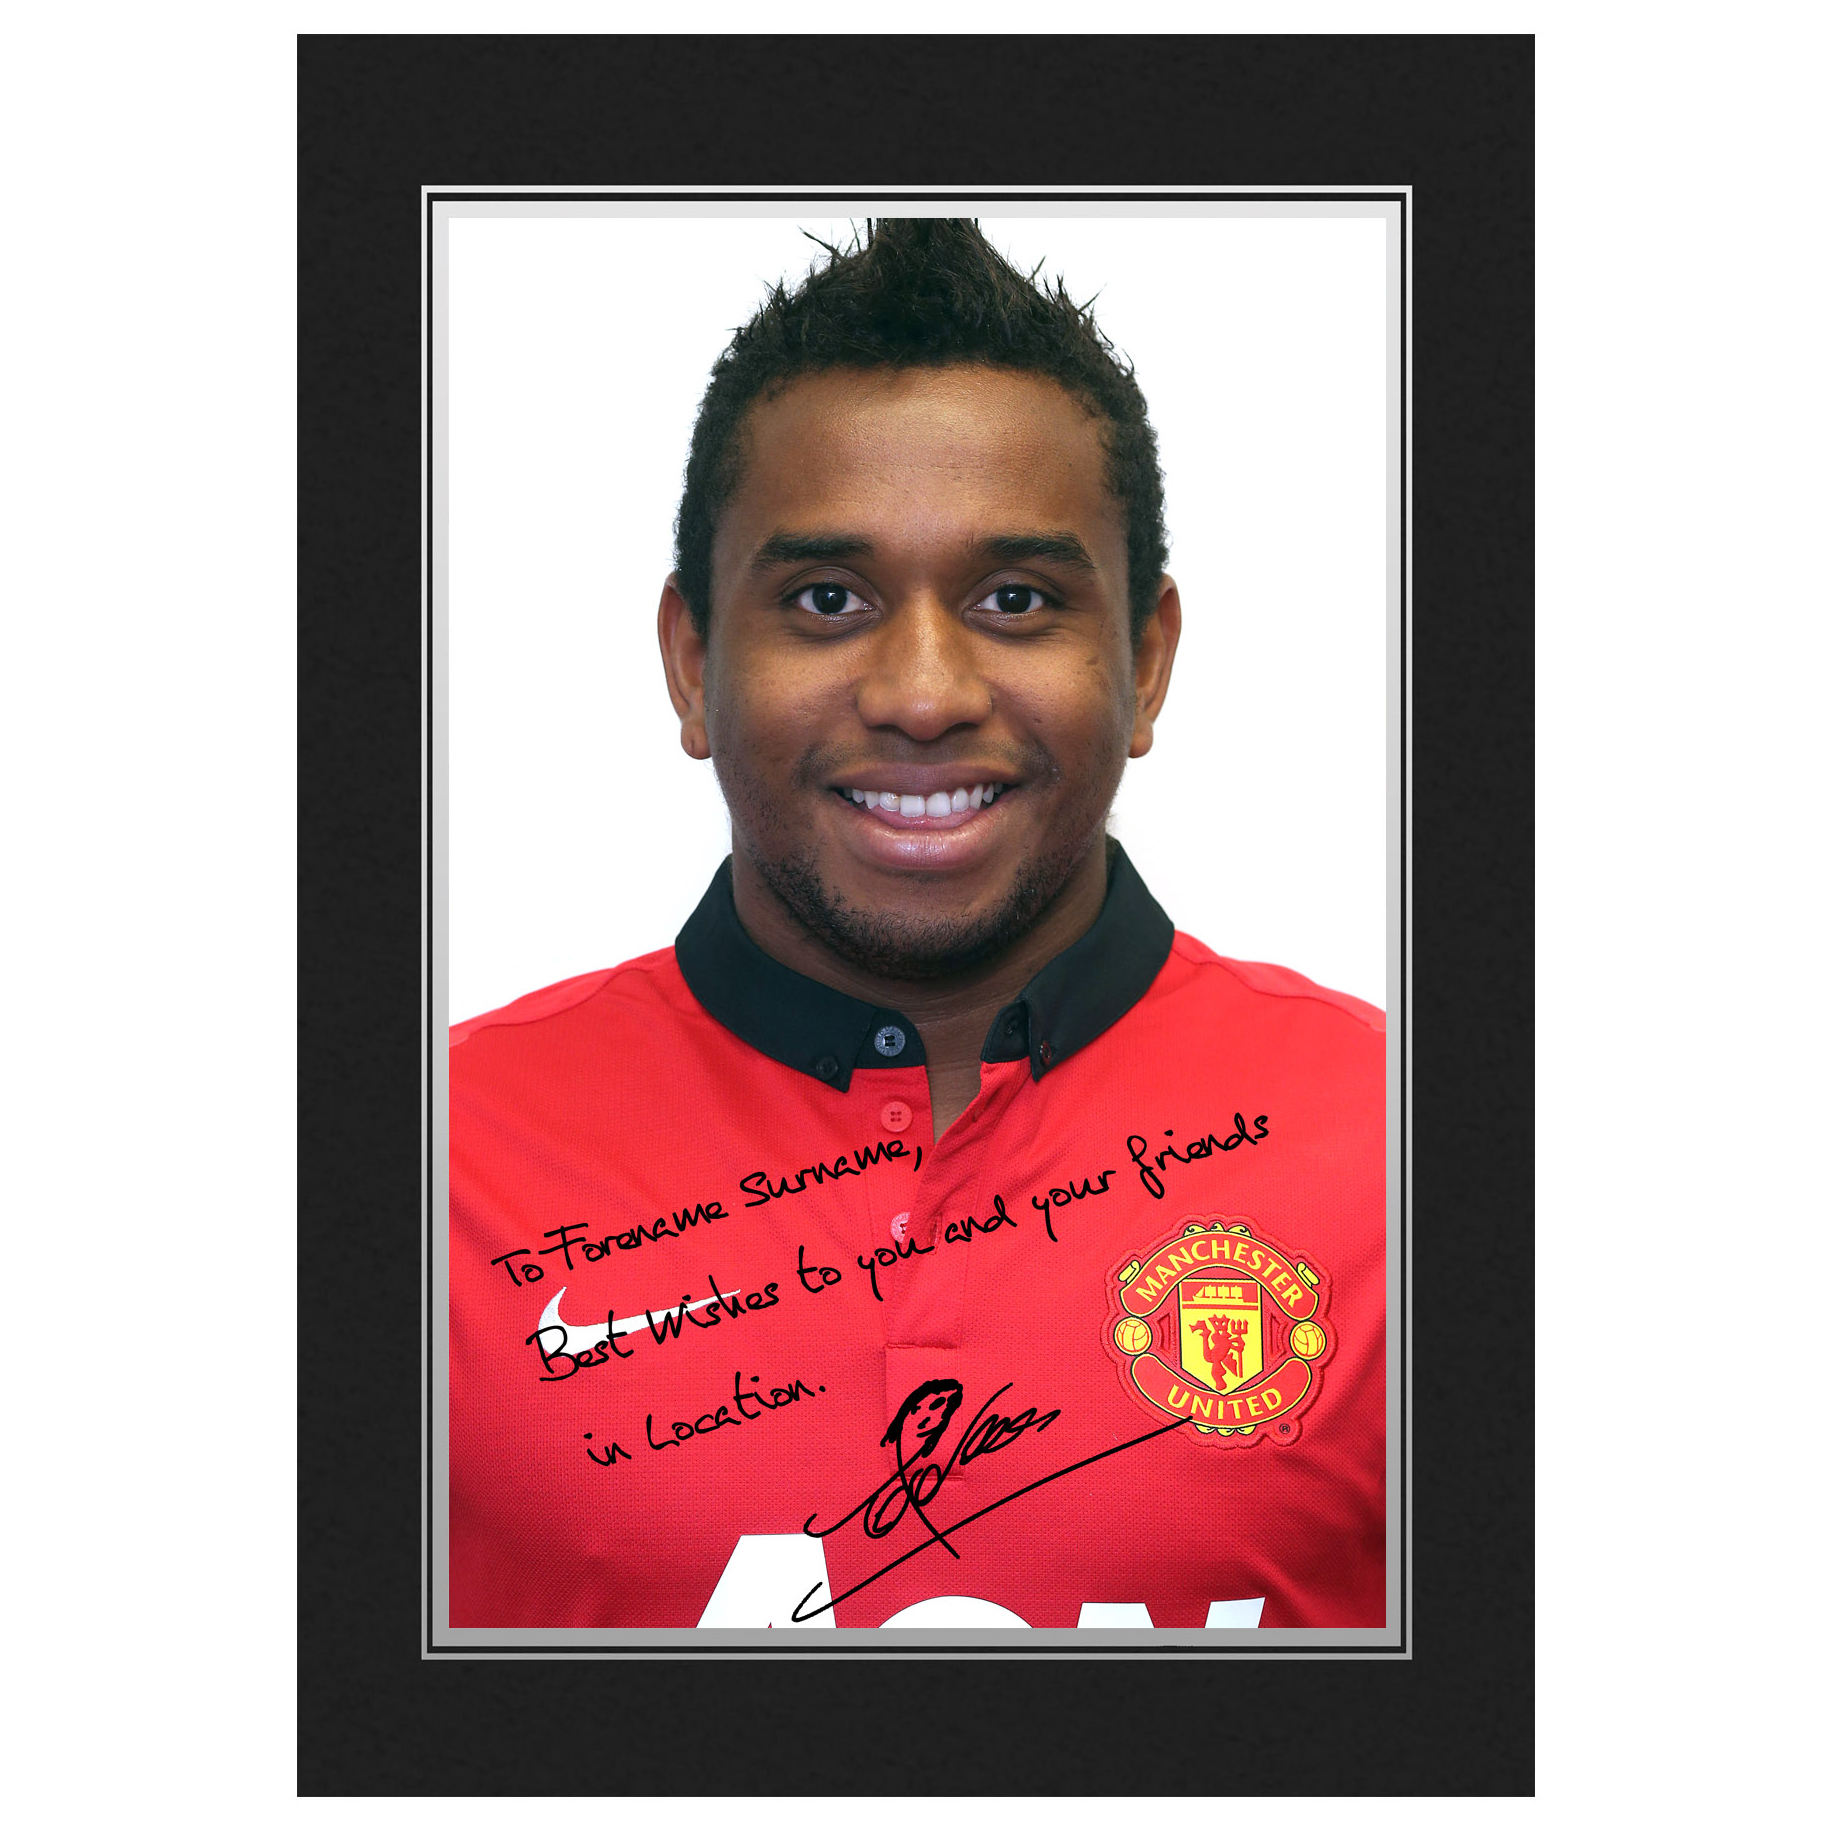 Manchester United Personalised Signature Photo In Presentation Folder - Anderson